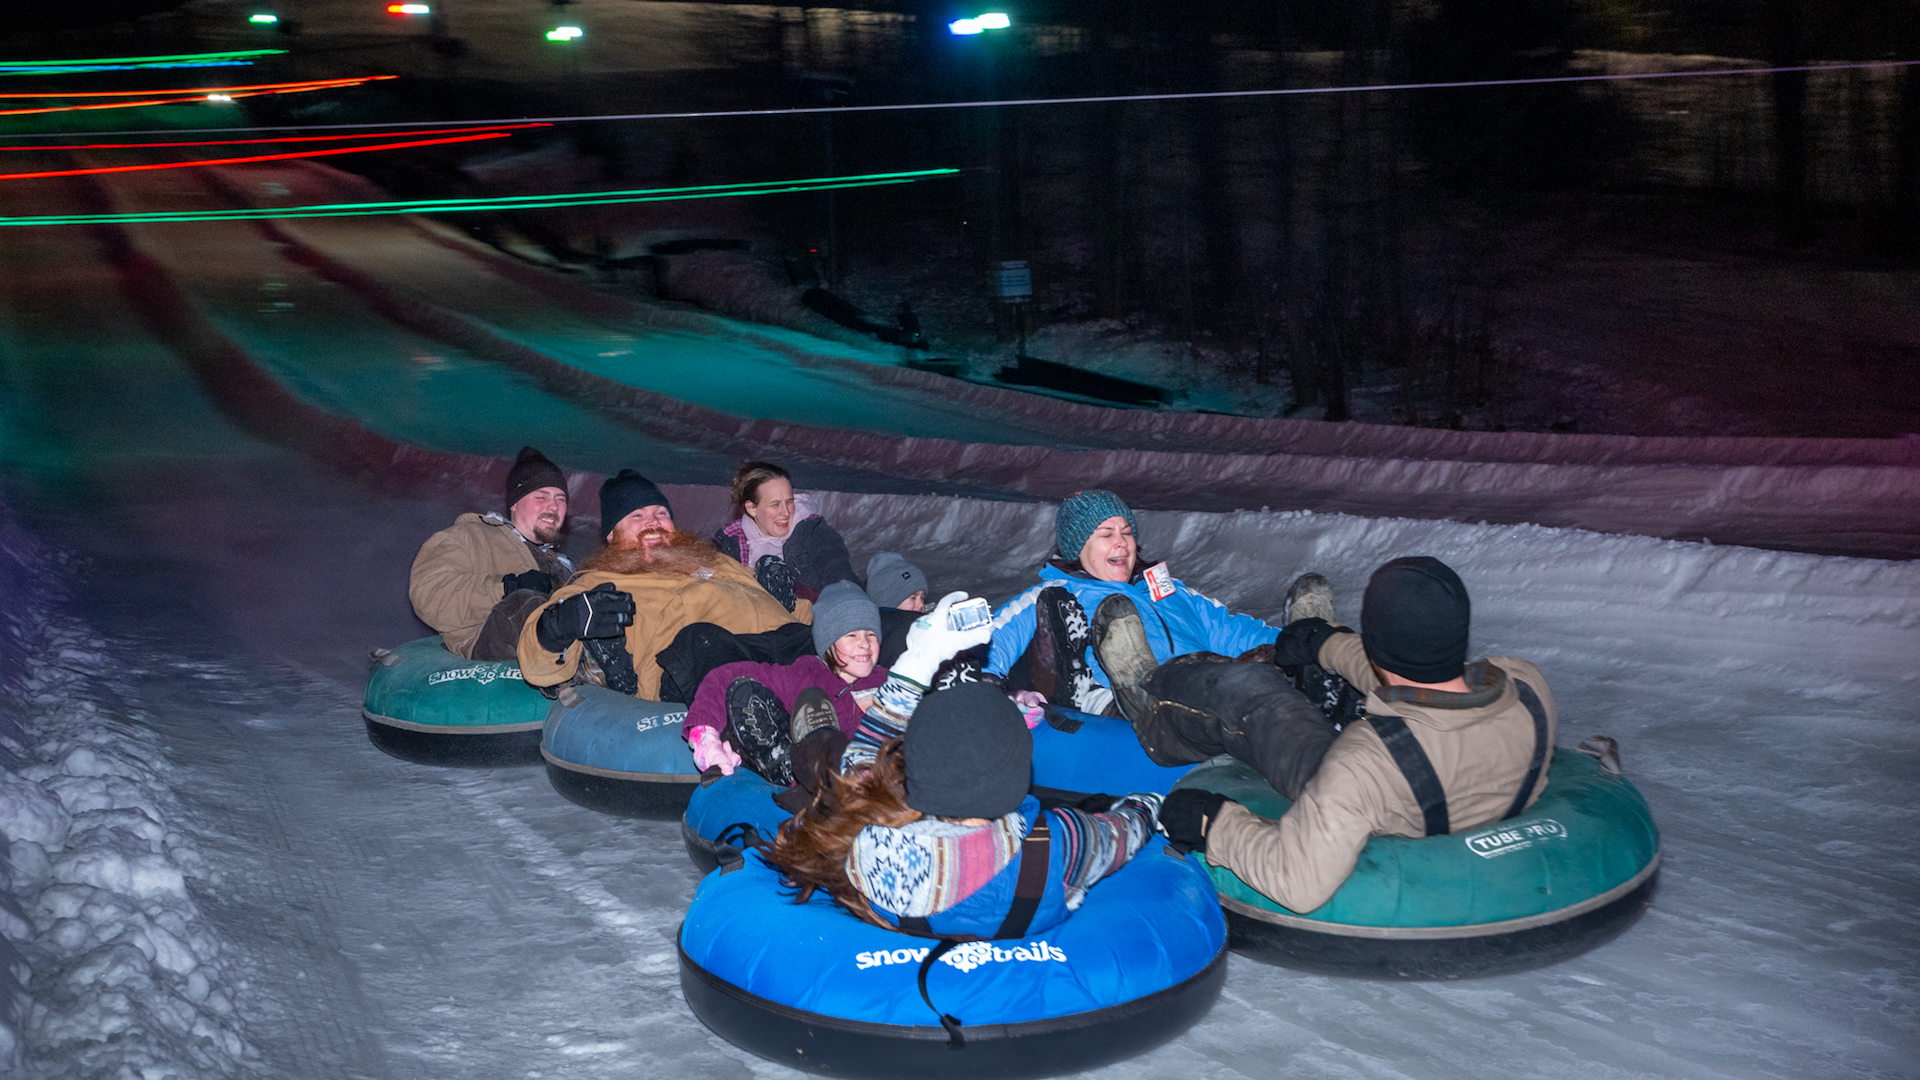 CURIOUS WHEN WE'LL CLOSE TUBING FOR THE SEASON?